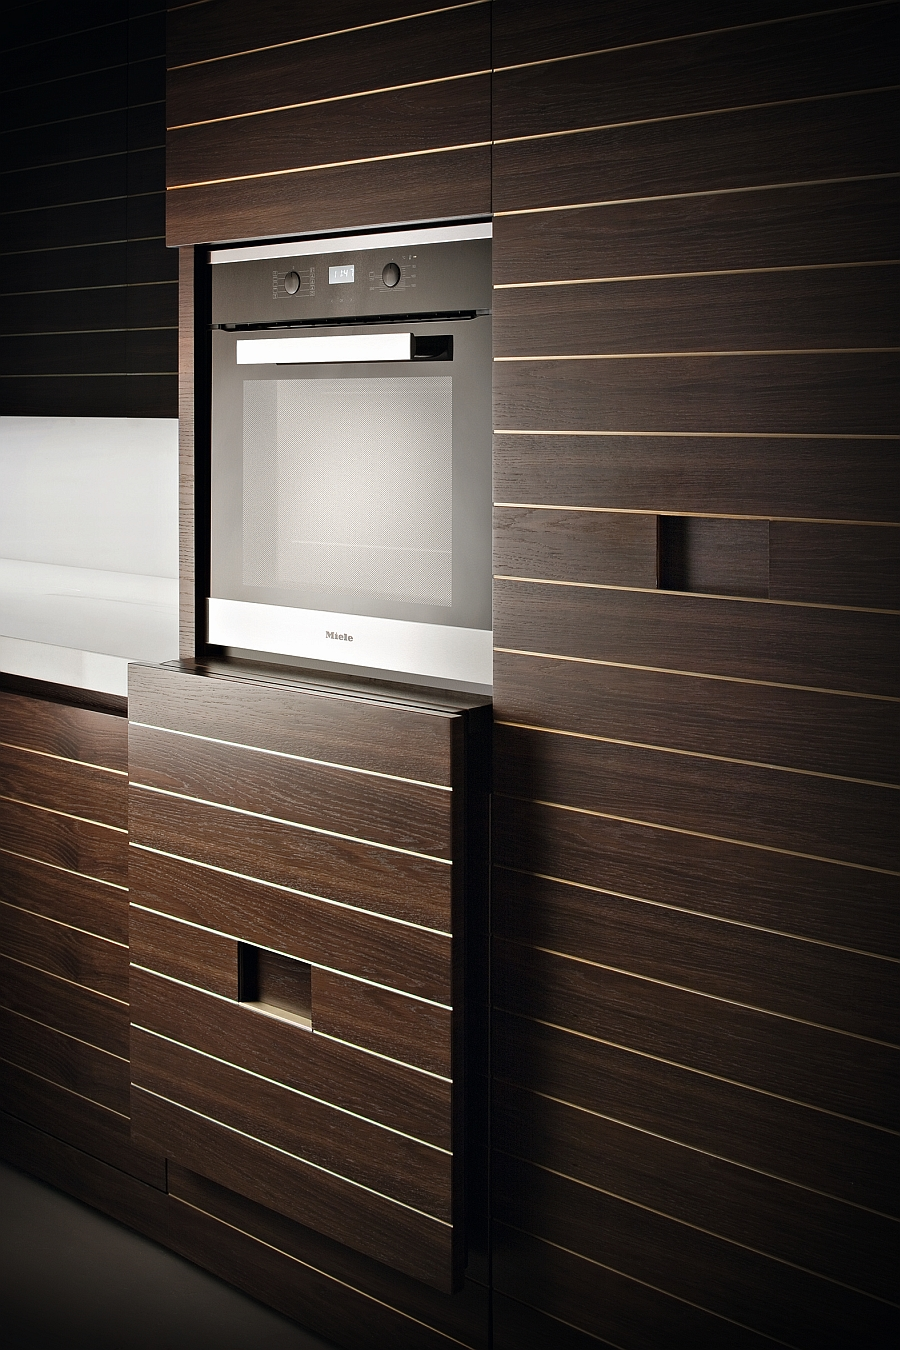 Vertical sliding system that reveals the oven when needed